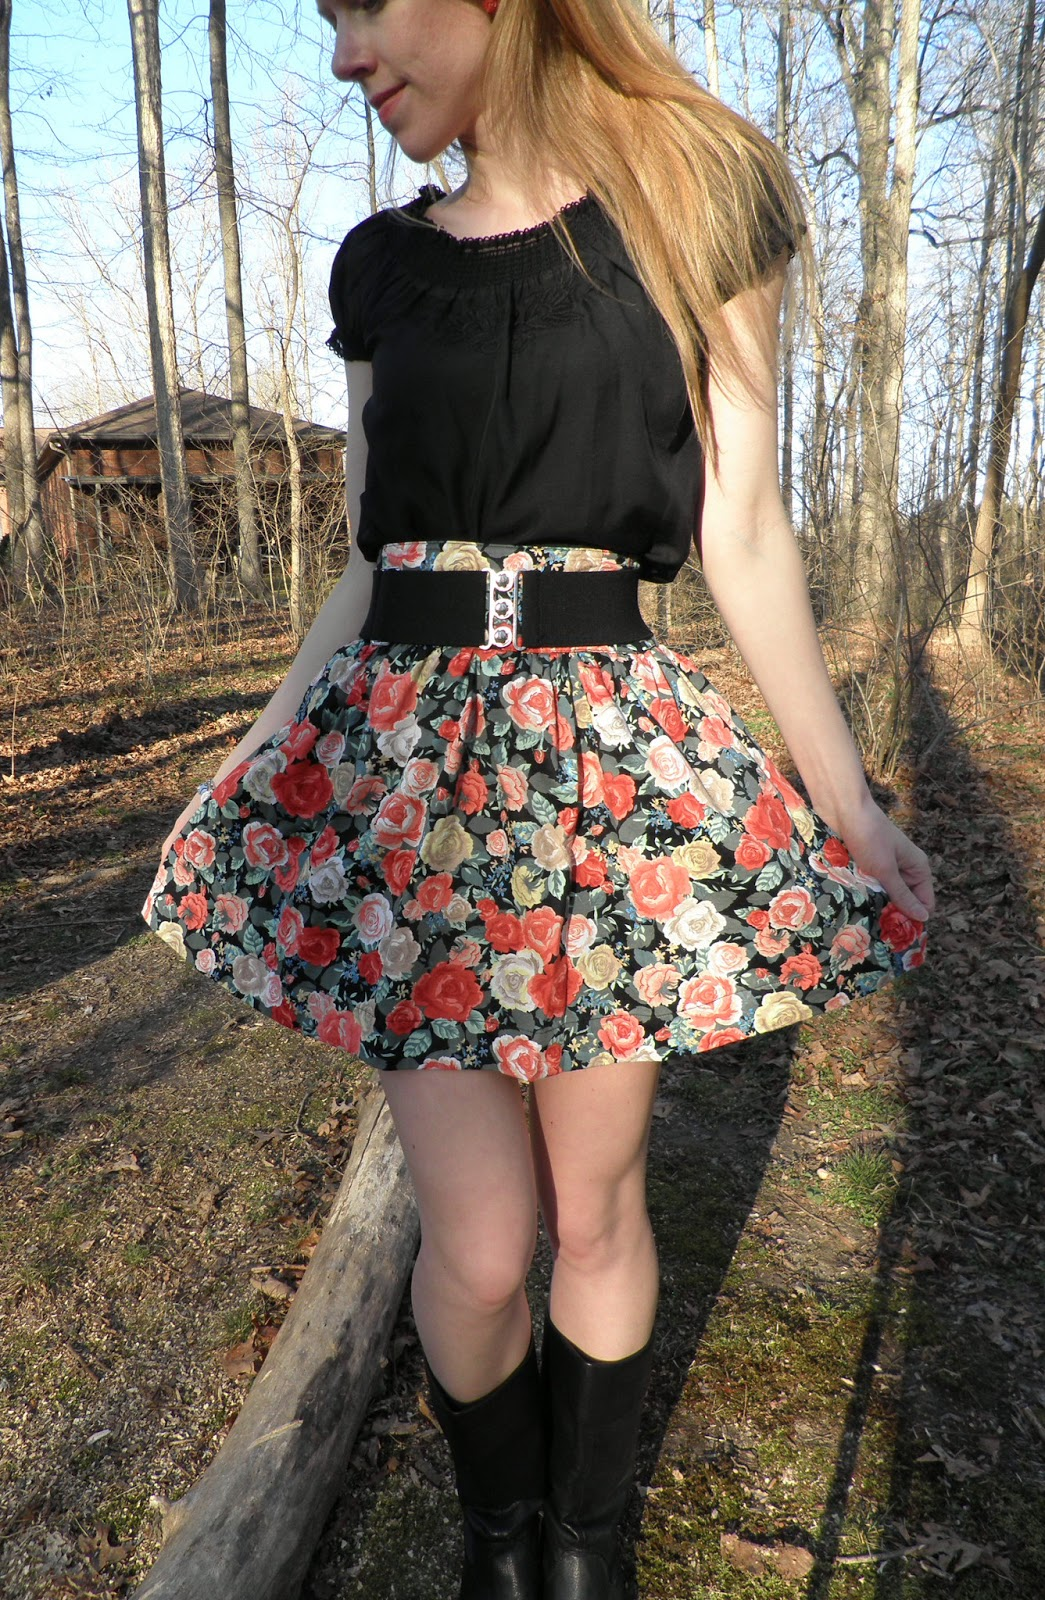 High Waisted Skirt Outfits Tumblr Shopping Guide We Are